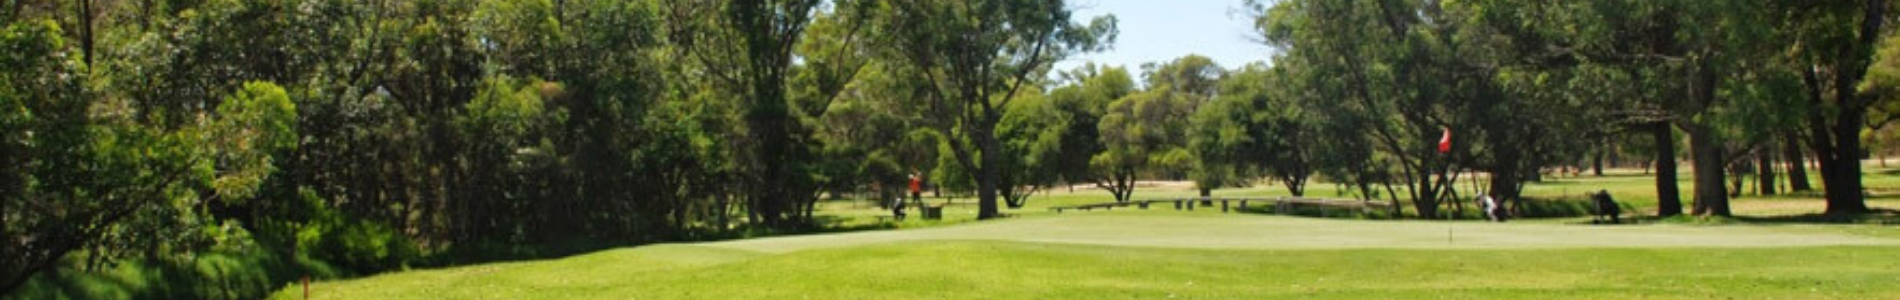 Pinjarra Golf Club Pro Shop